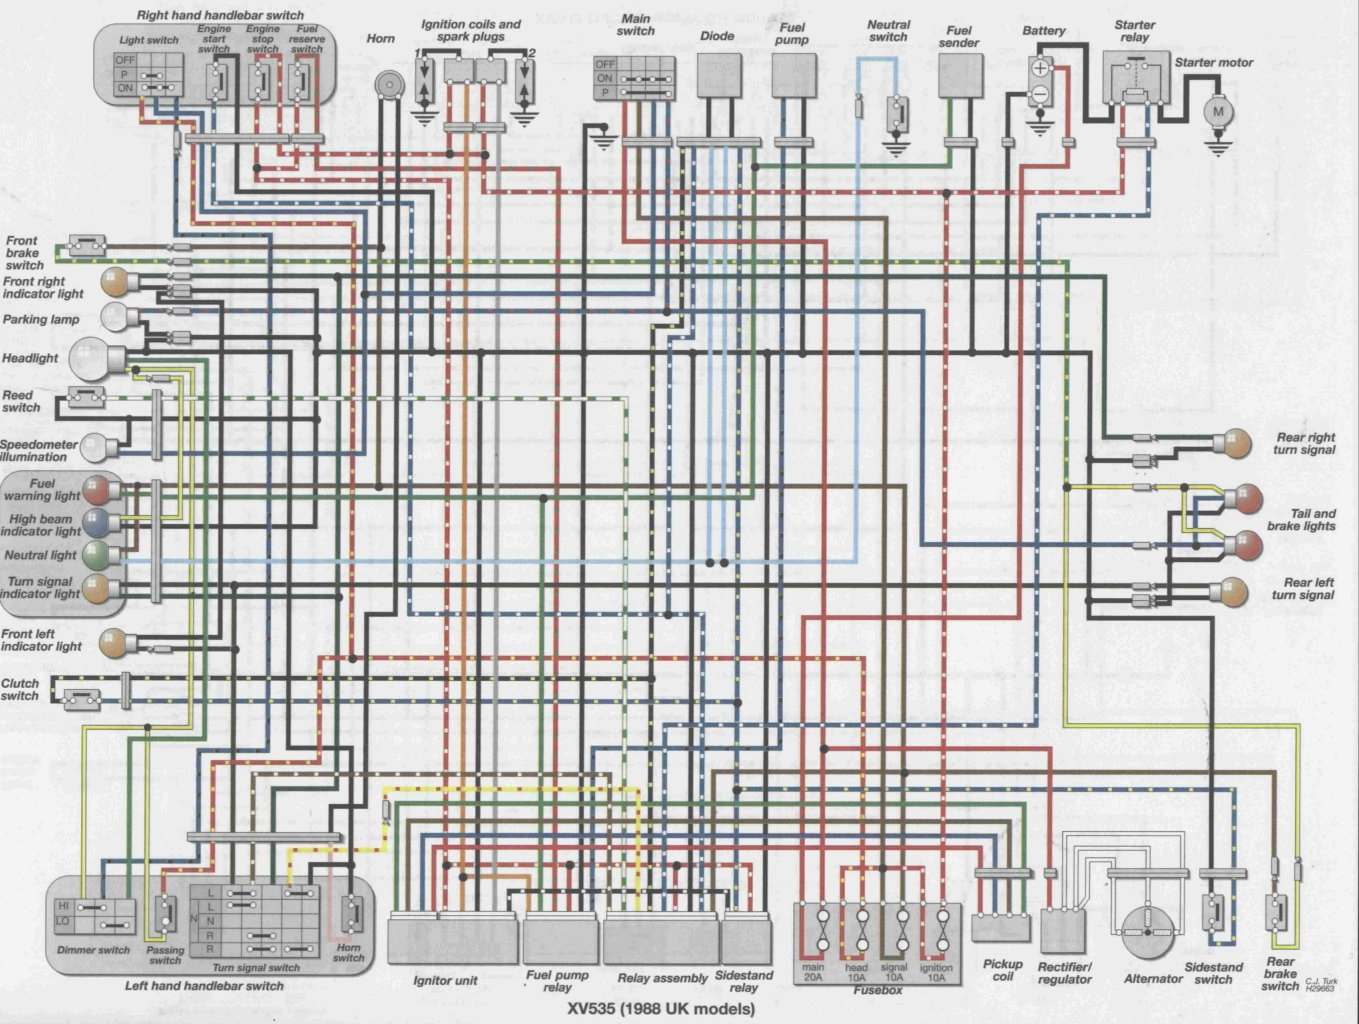 Yamaha At1 Wiring Diagram Simple Shematics Dt400 Hd Wallpapers Wallpaperscfmobilec Ml Bolt Get Free High Quality